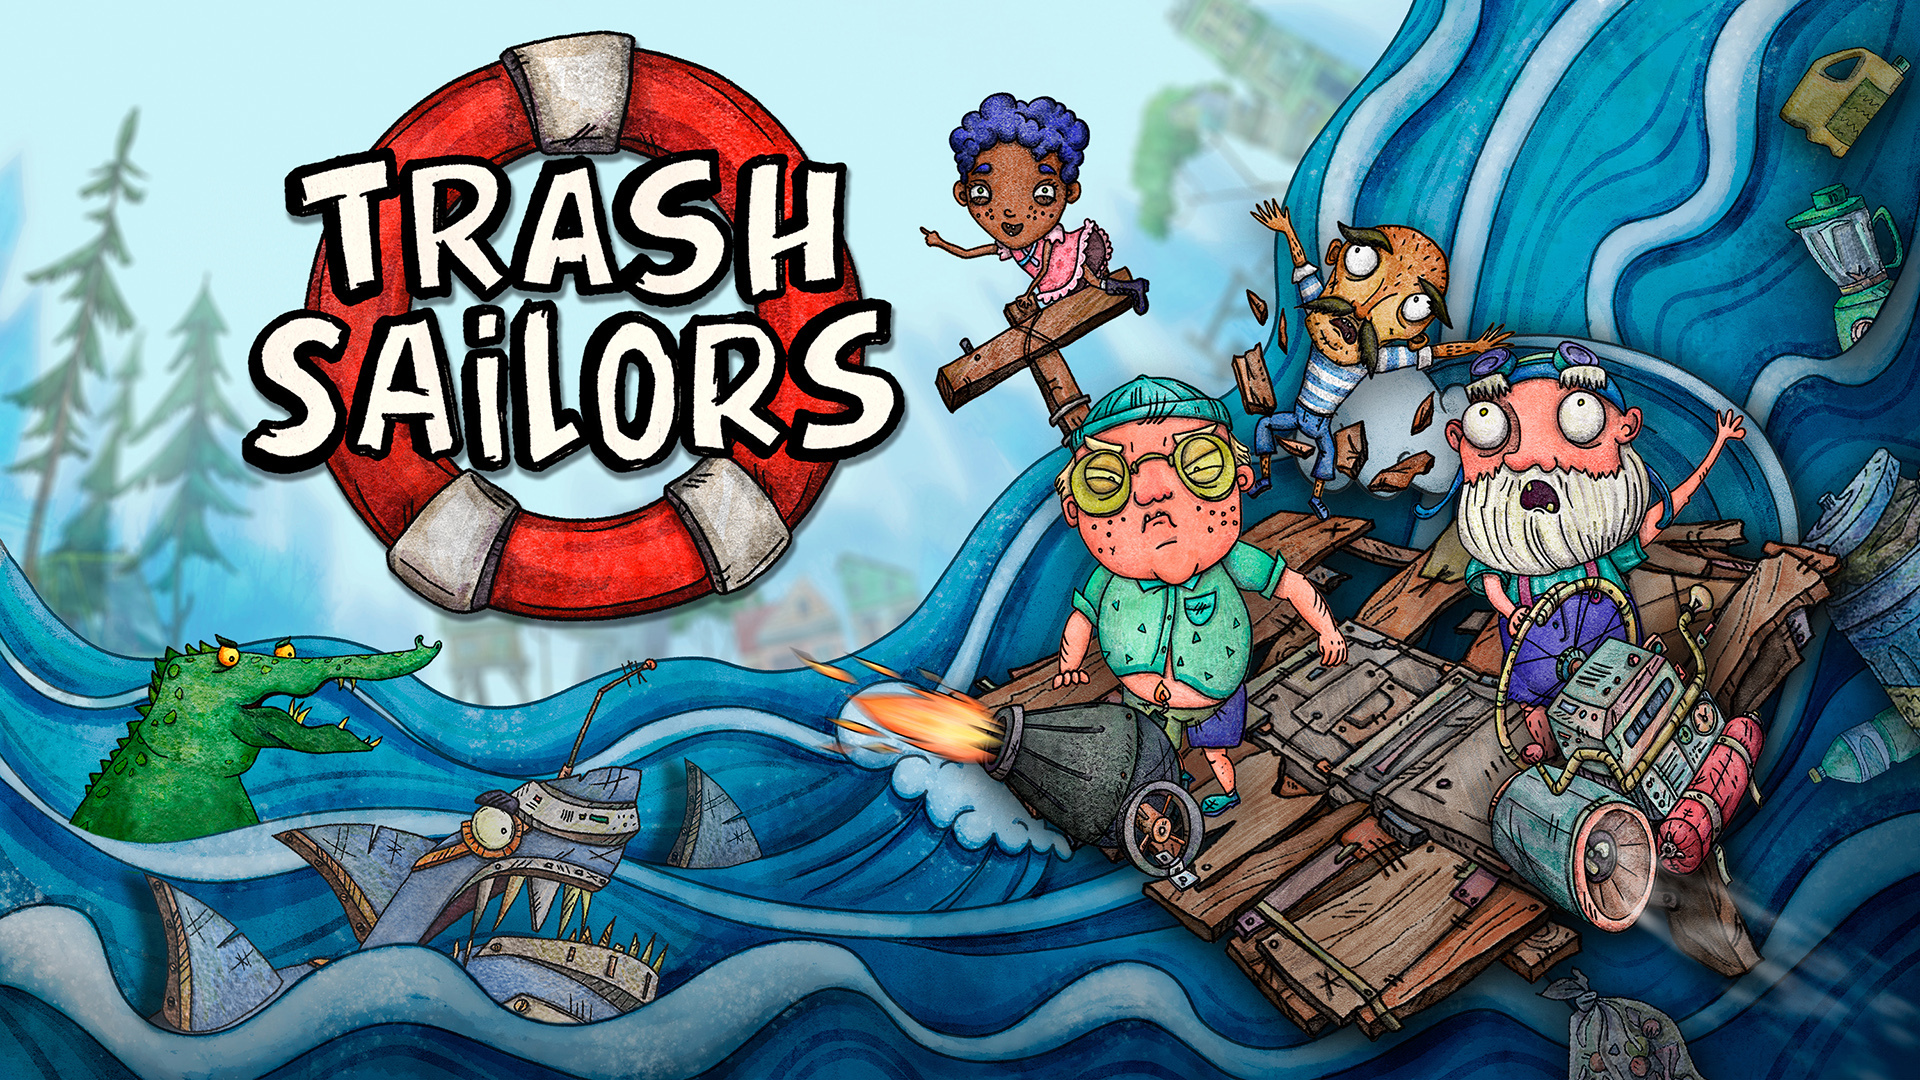 Trash Sailor é anunciado finalmente para Nintendo Switch 7